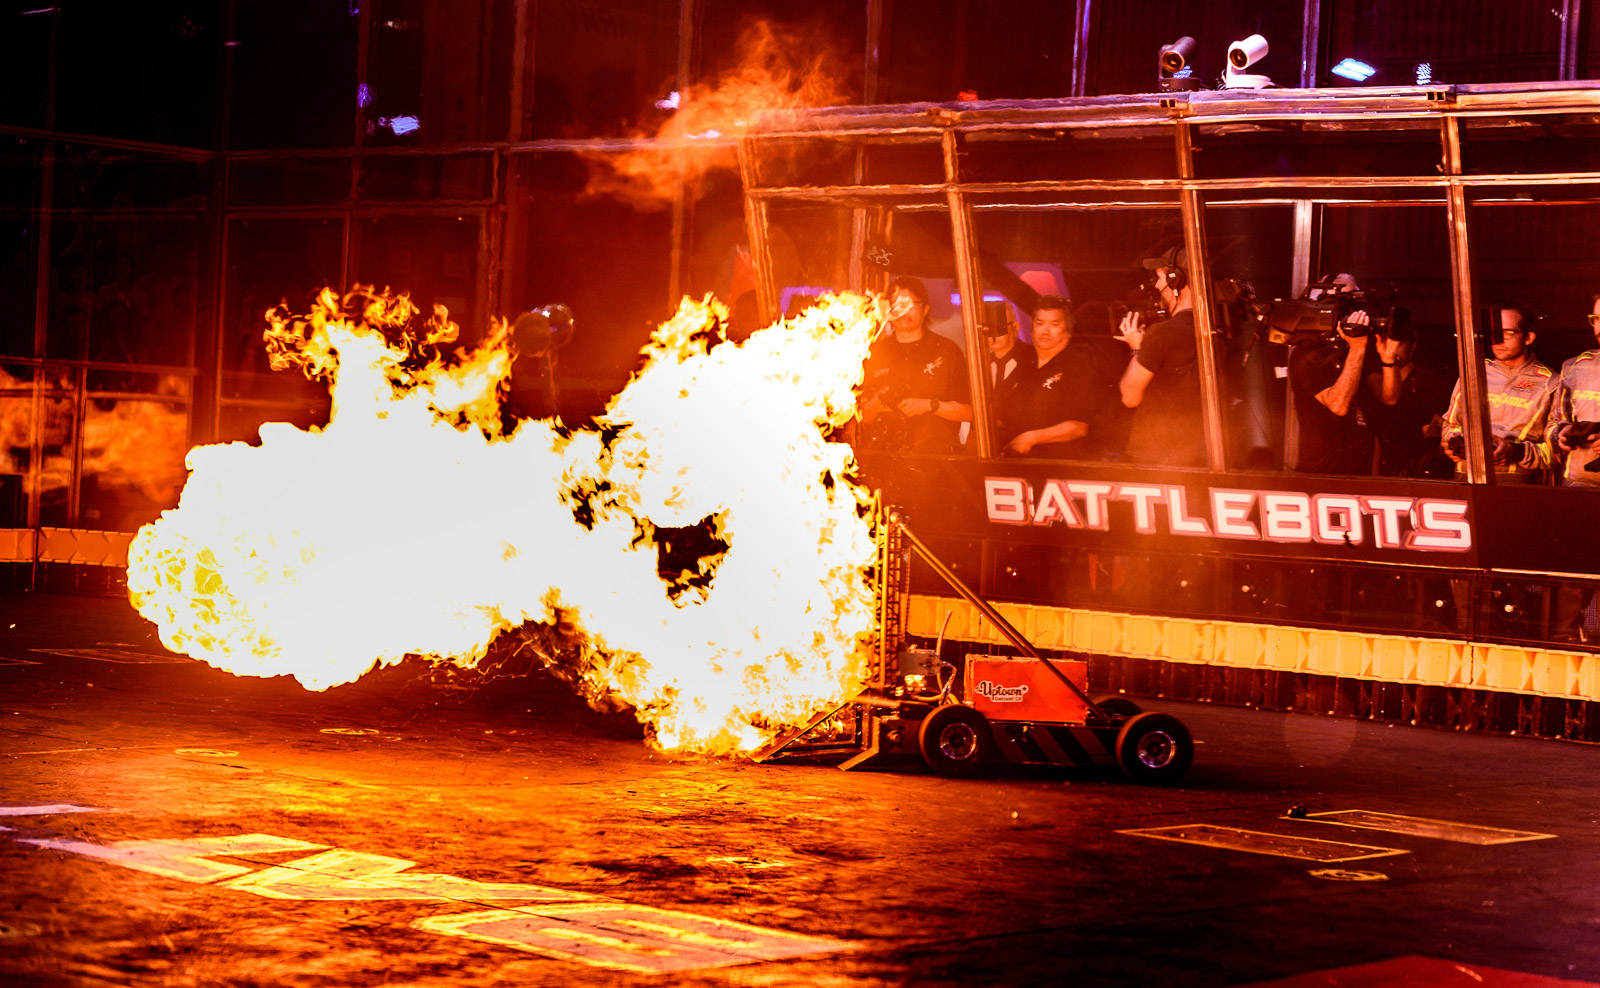 Fight BattleBots Fight!